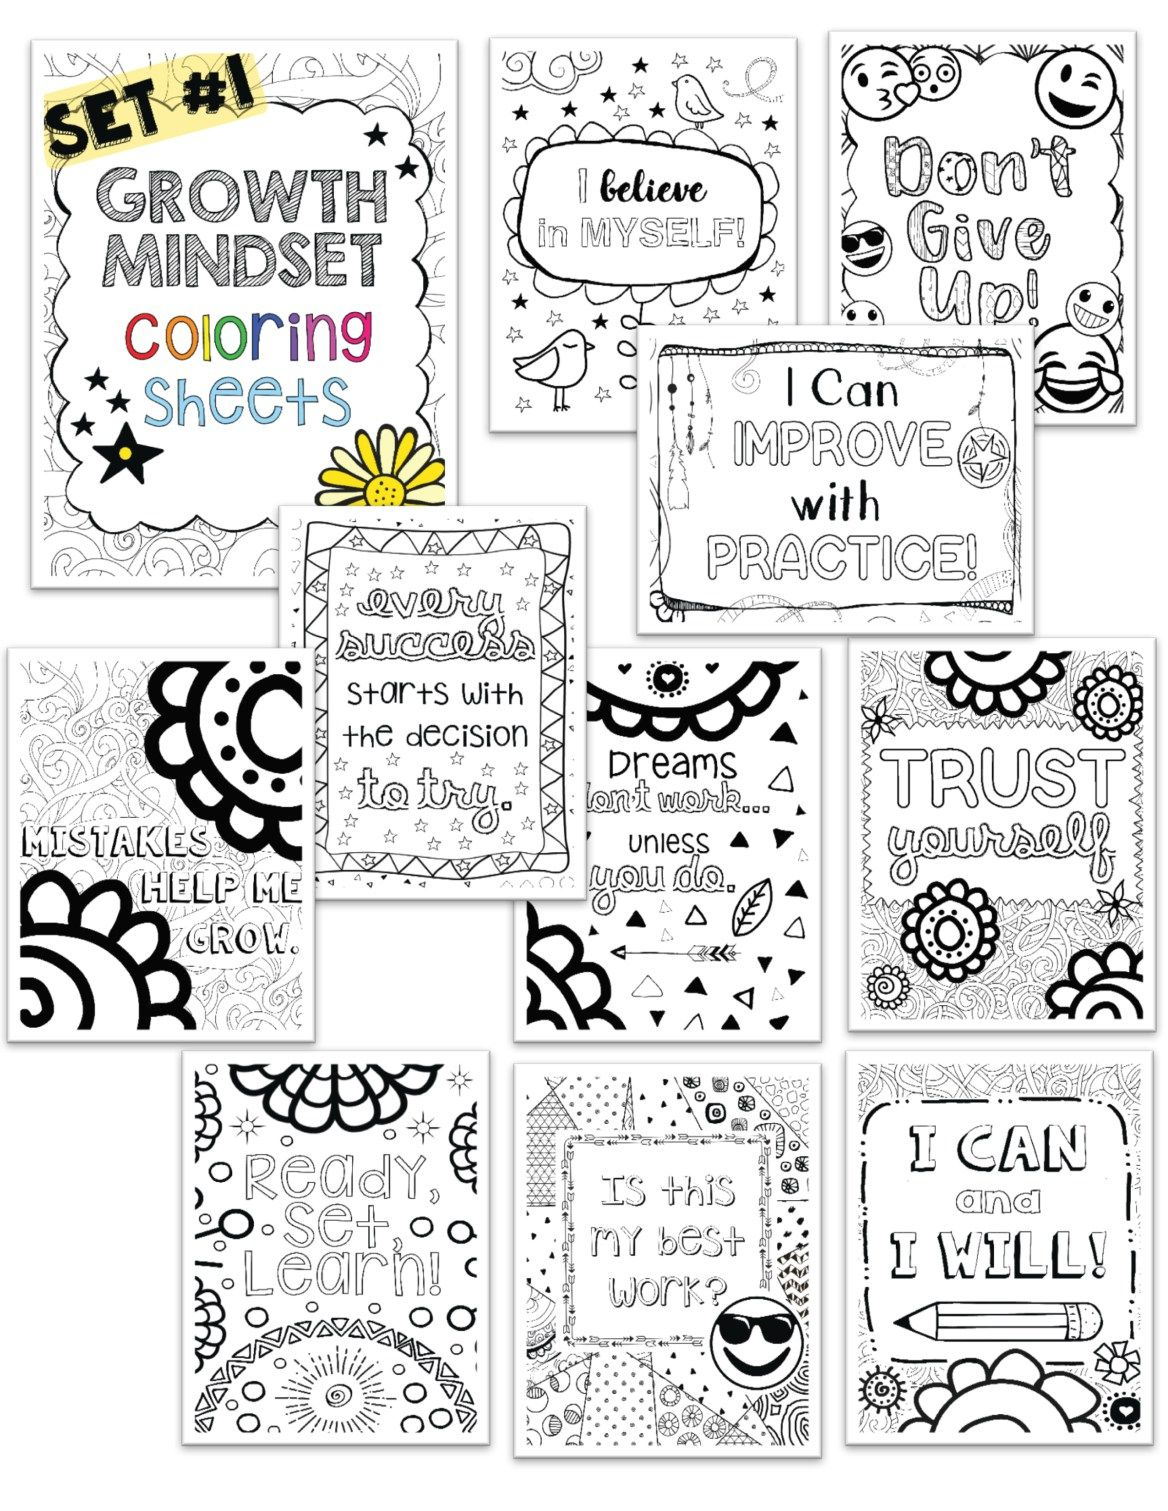 Growth Mindset Coloring Pages For Mindfulness Set 1